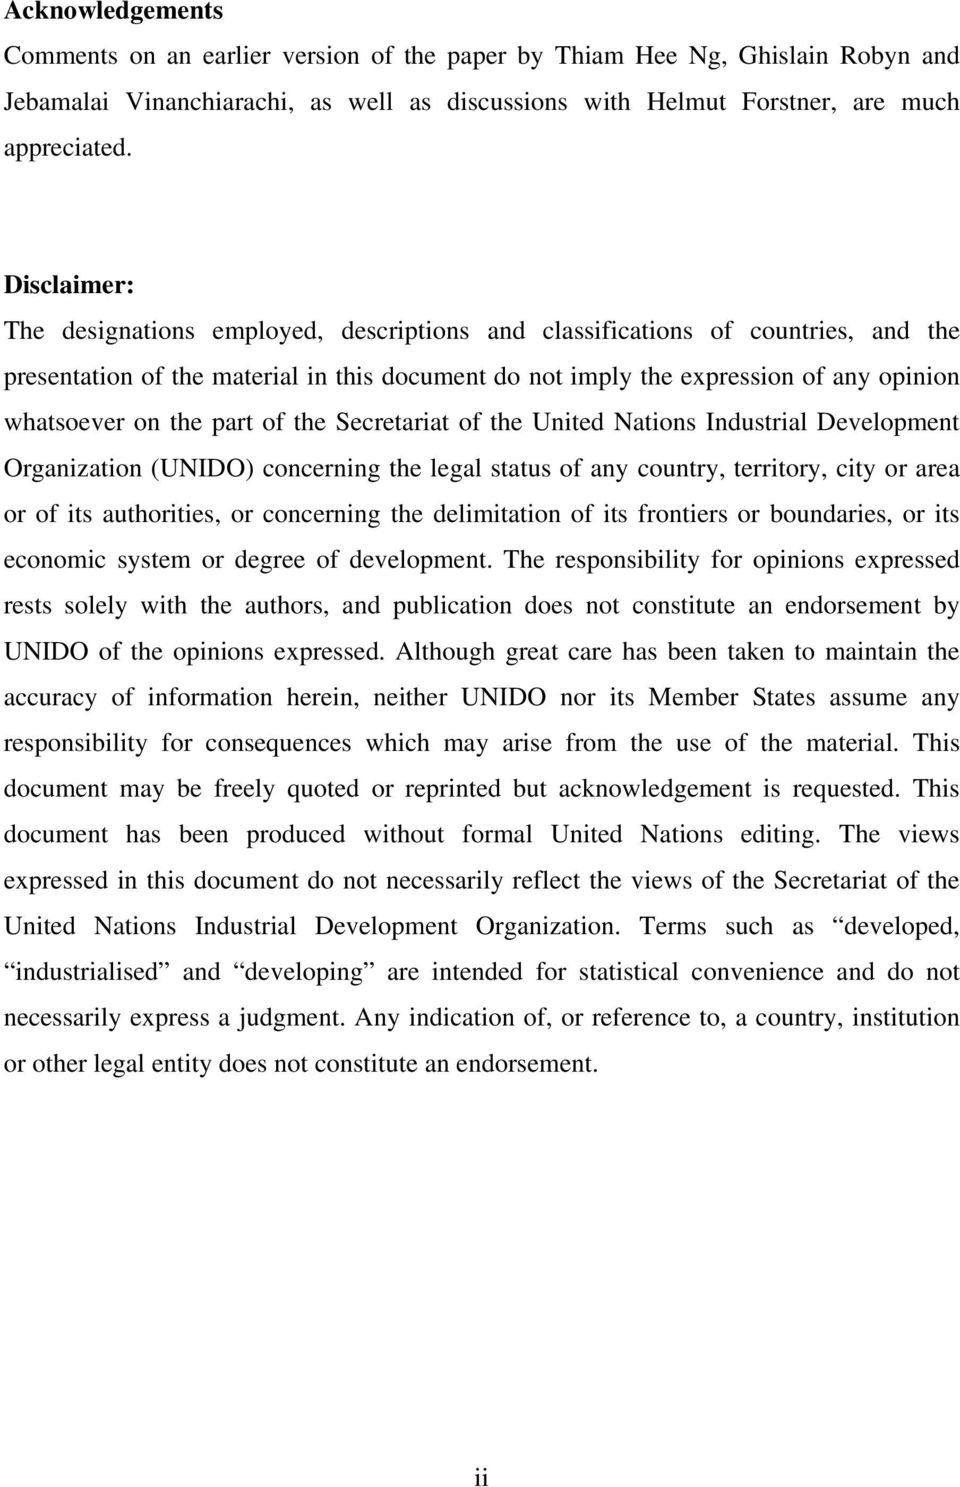 the part of the Secretariat of the United Nations Industrial Development Organization (UNIDO) concerning the legal status of any country, territory, city or area or of its authorities, or concerning